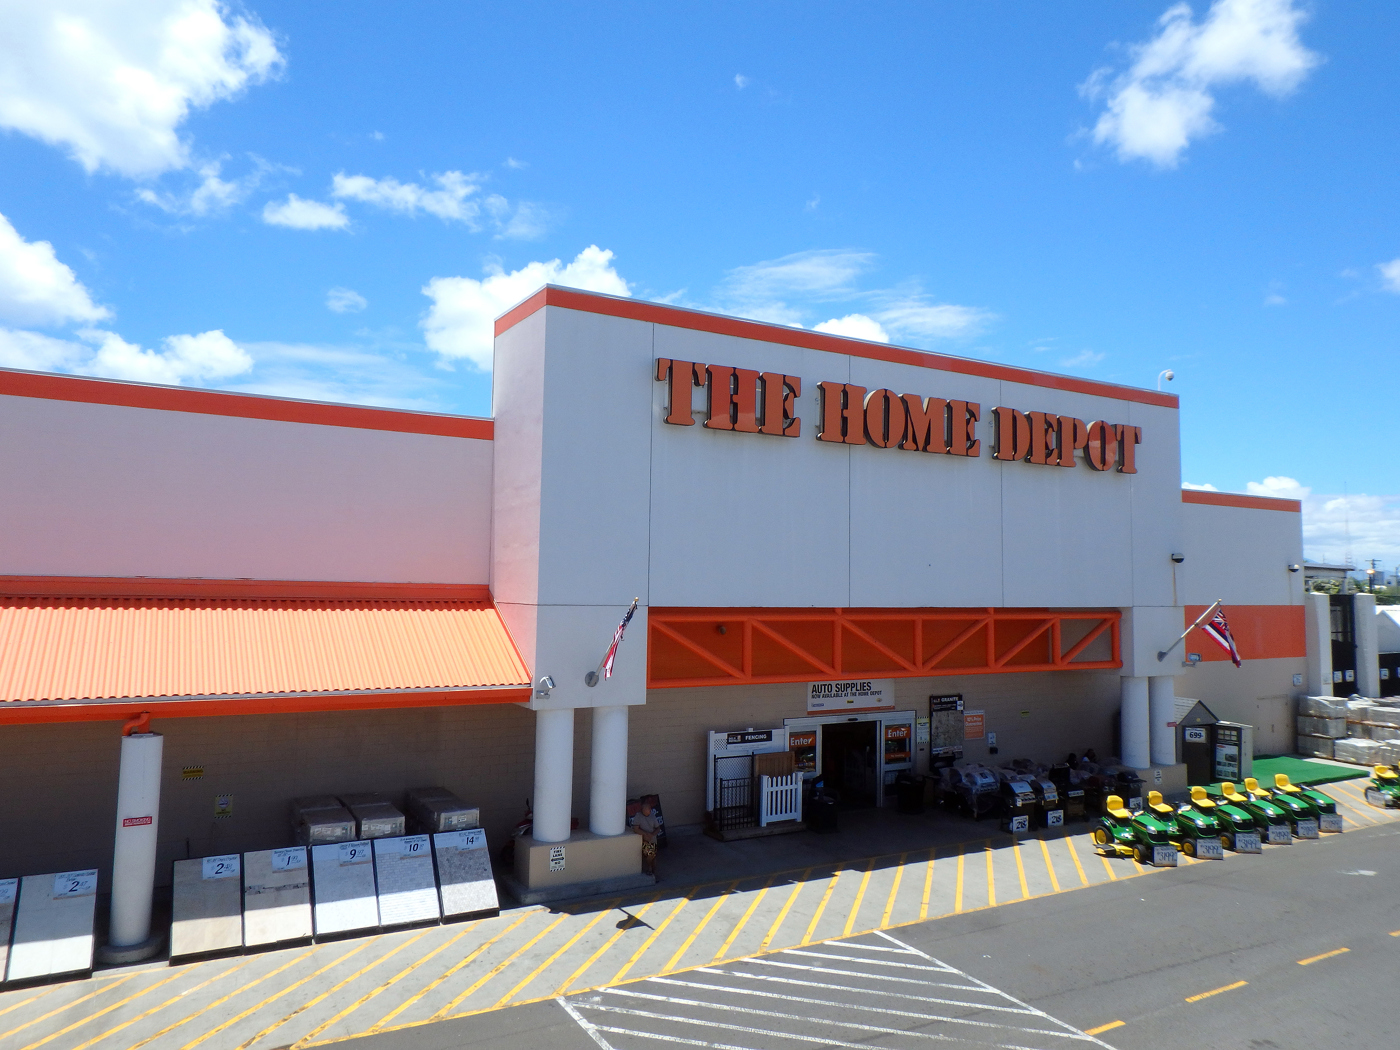 Home Depot HD stock news and analysis